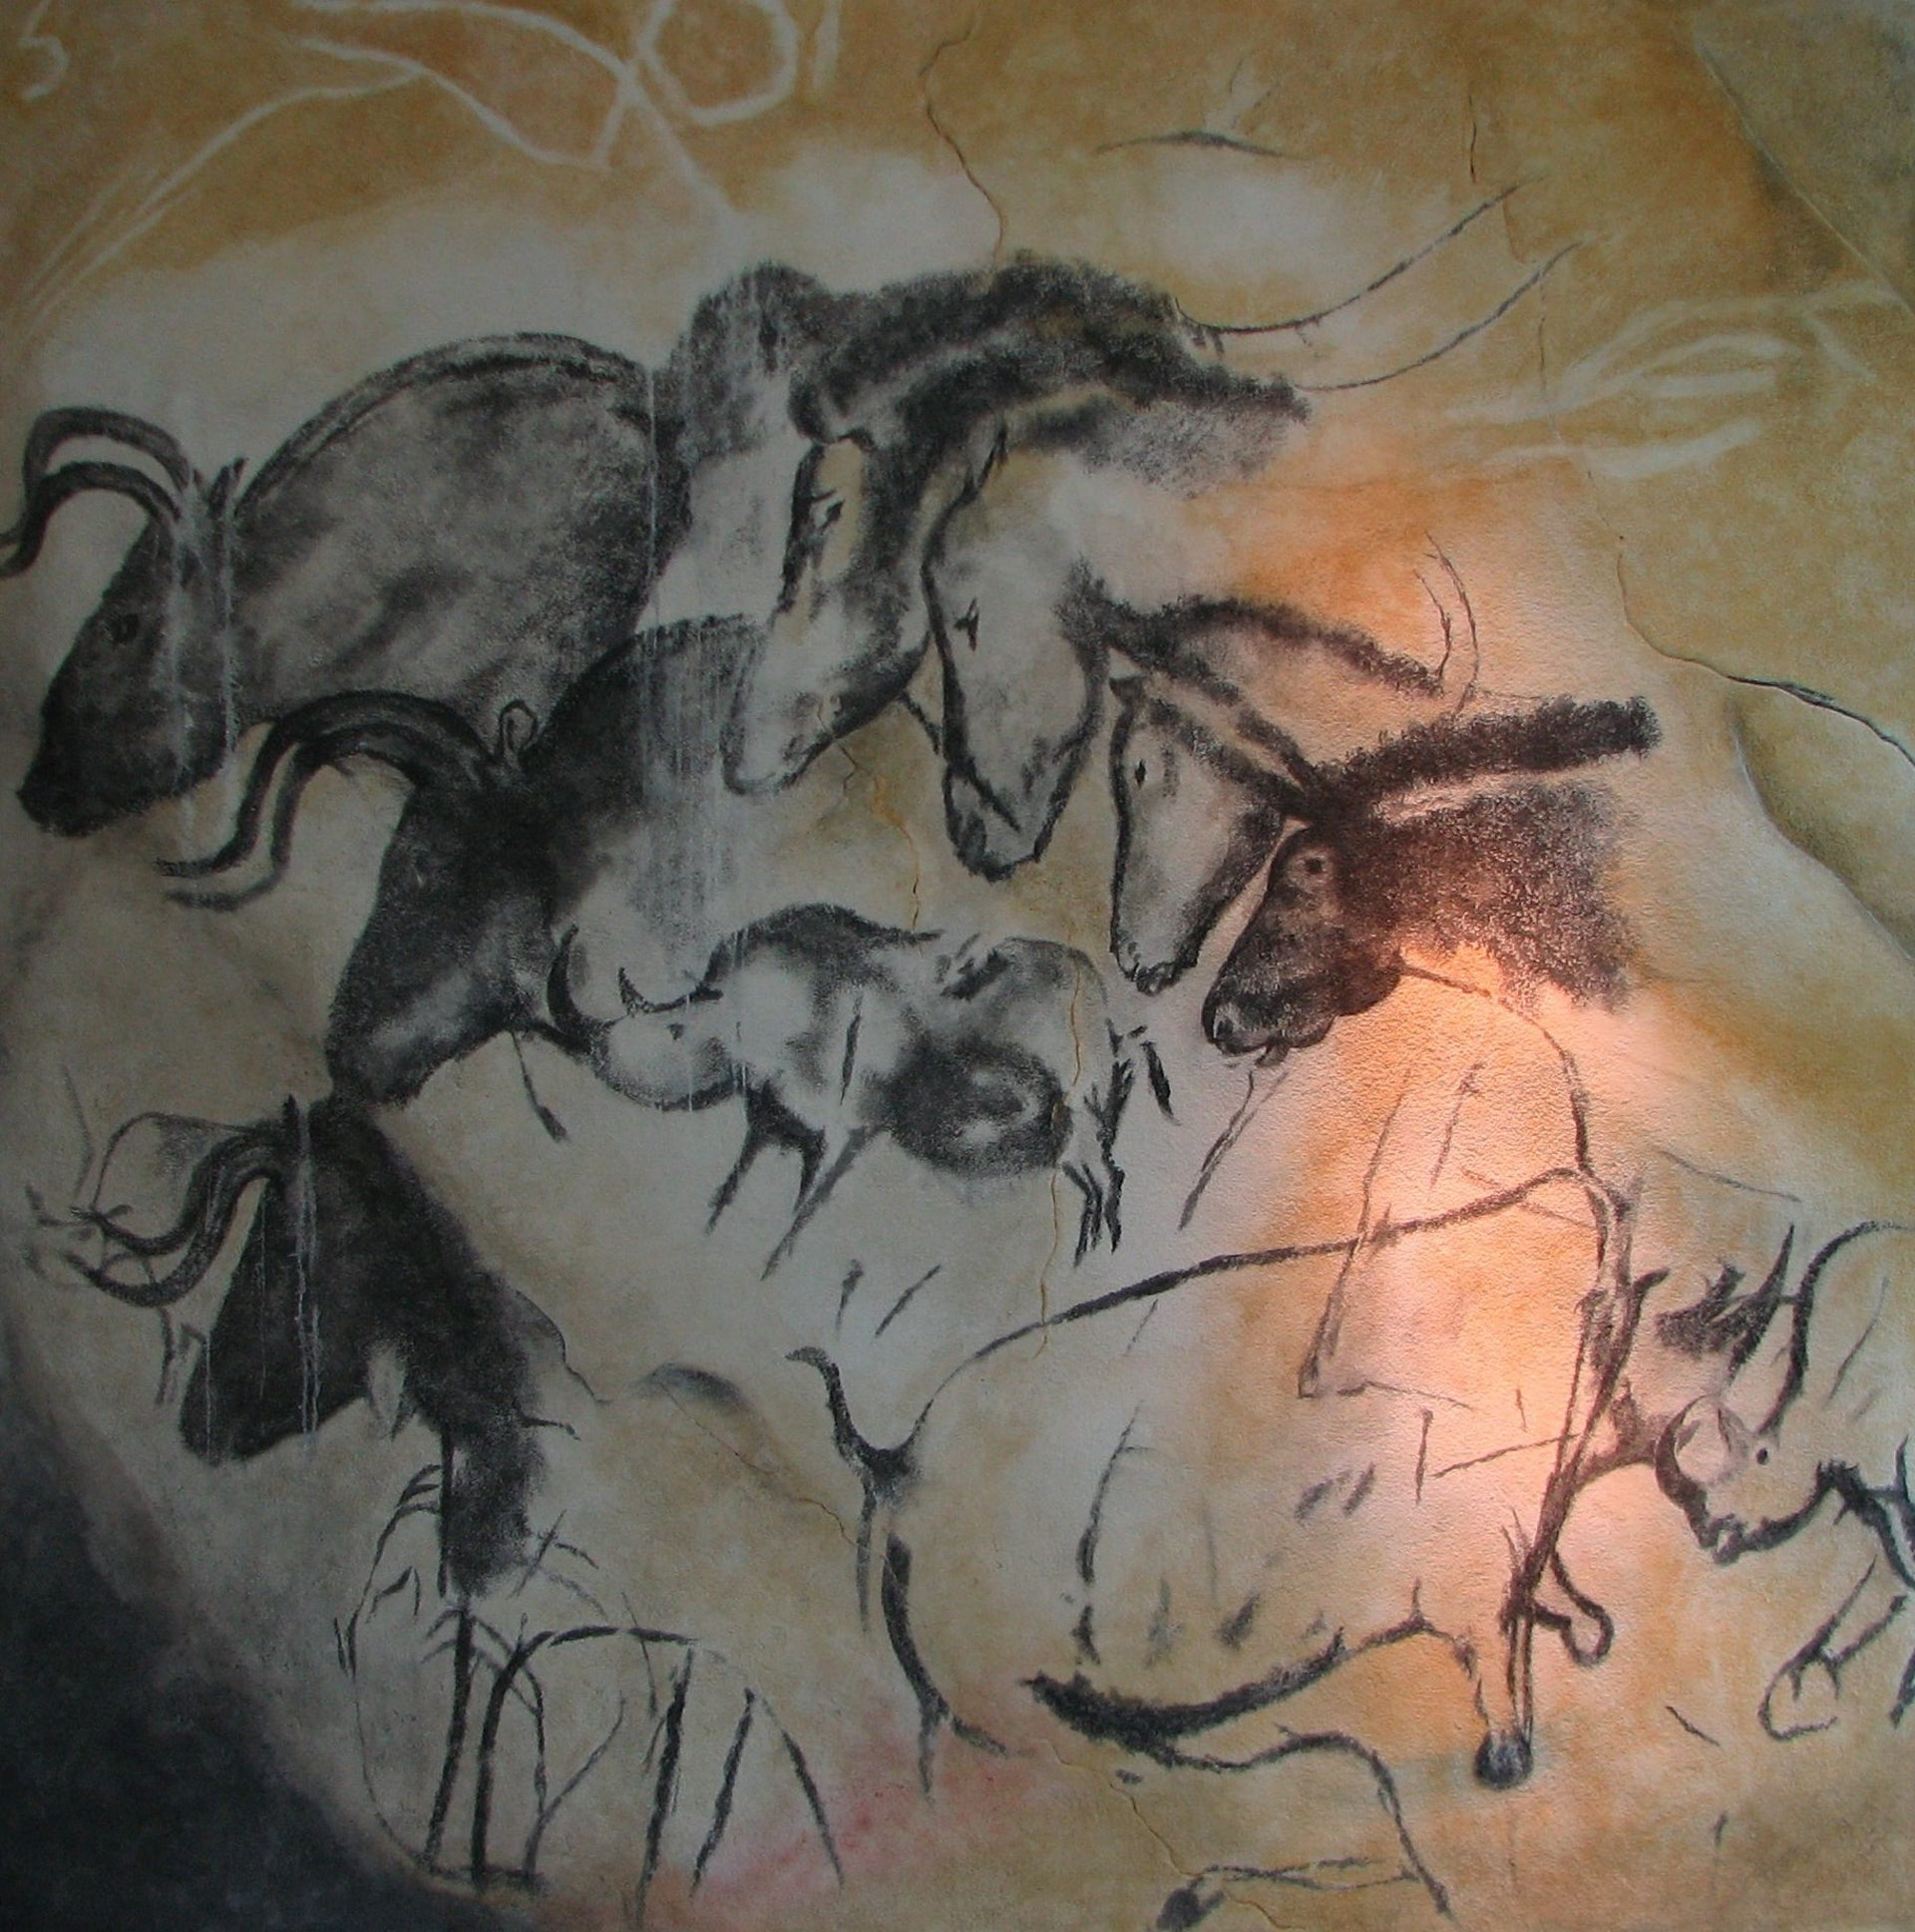 Replica at Brno Museum of the horses and rhinos painted by Homo sapiens in Chauvet Cave, France, around 30,000 years ago